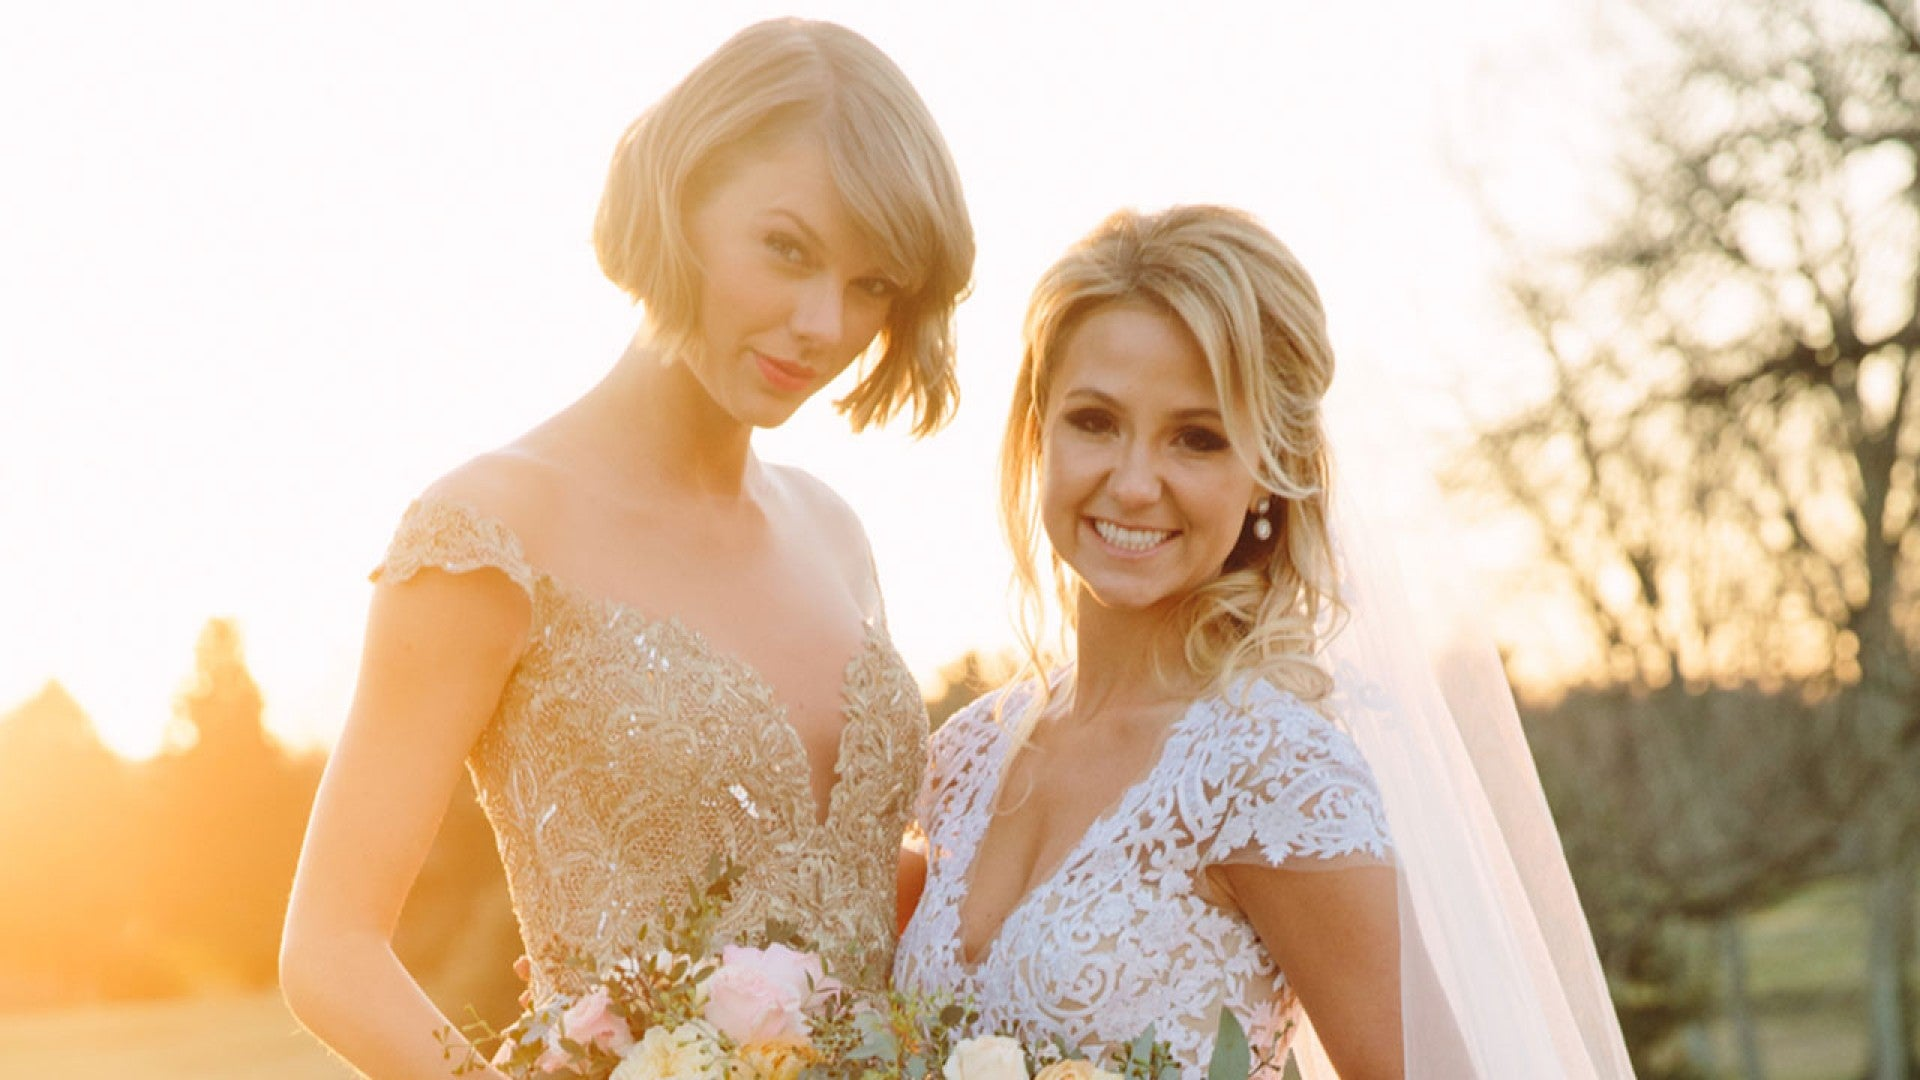 Taylor Swift Wedding Rumors and Real Truth